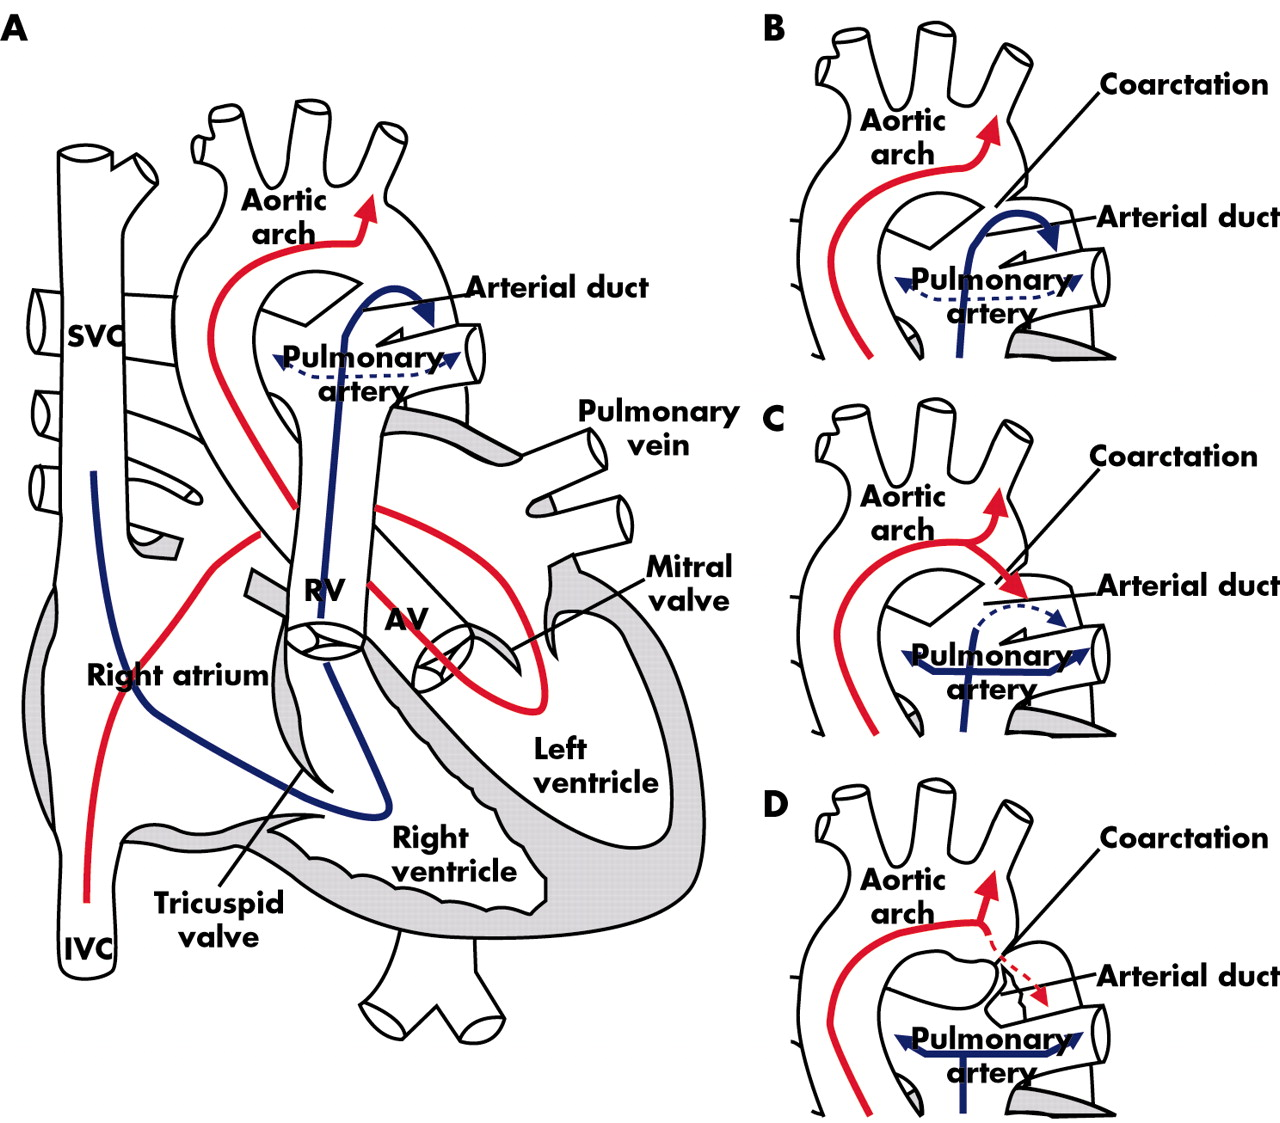 Coarctation of the aorta from fetus to adult curable condition or download figure open in new tab download powerpoint figure 2 diagram of normal fetal circulation pooptronica Image collections